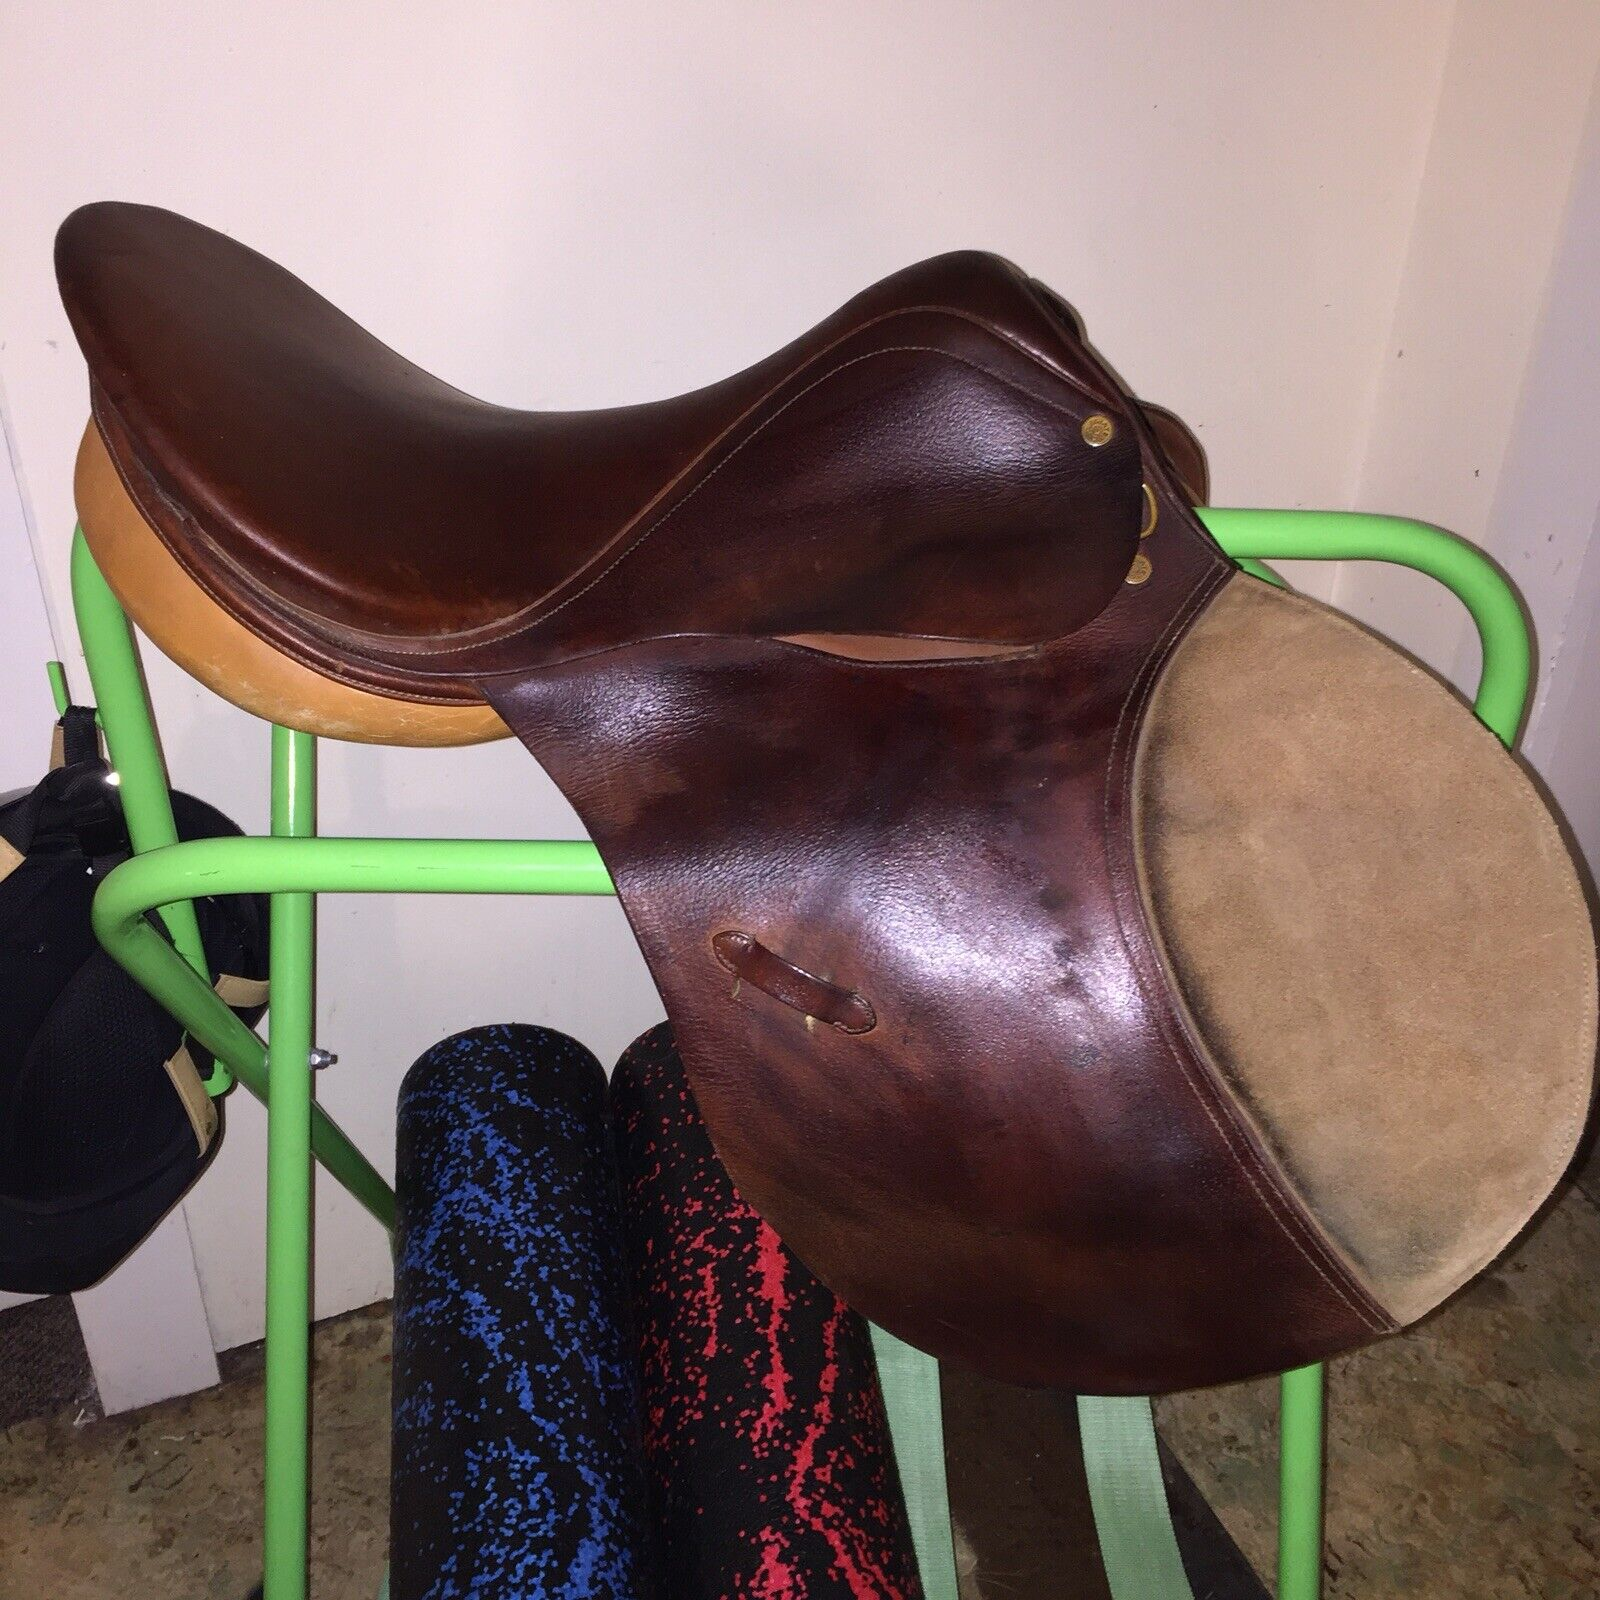 Collegiate AP, close contact english saddle 17 . Sold w out irons leathers